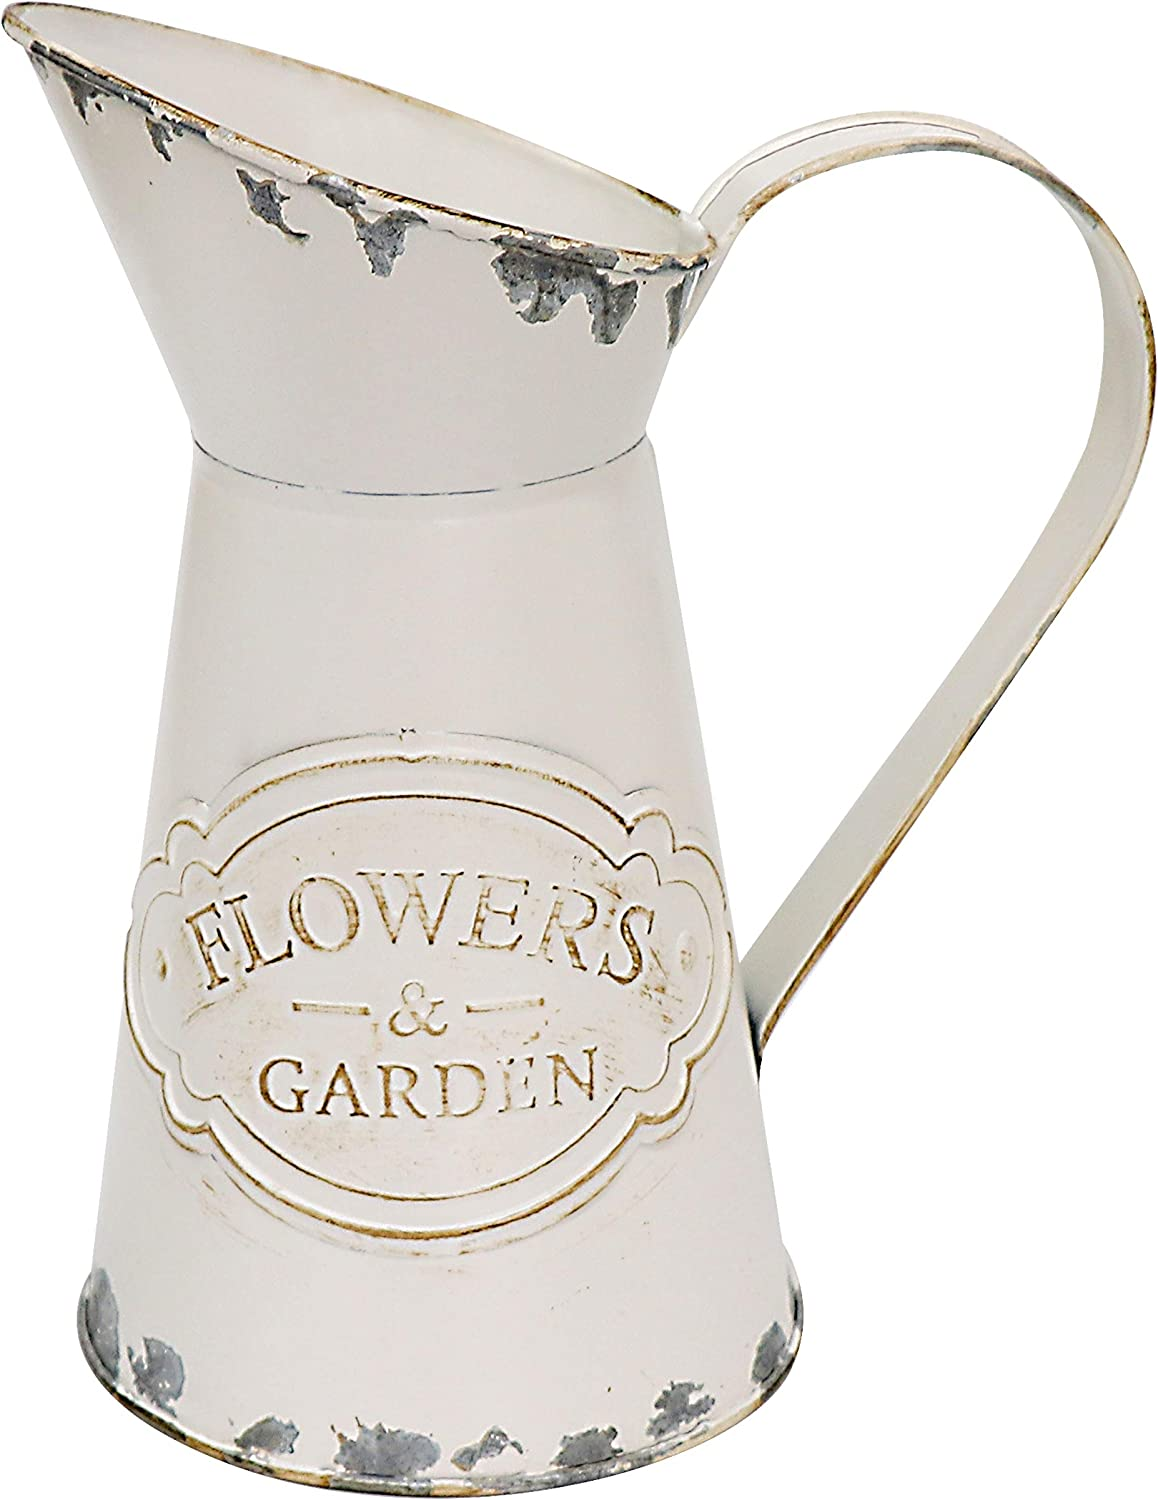 "Soyizom Vintage French Pitcher Vase Farmhouse Decorative Pitcher Metal Rustic Vase Watering Milk Jug Can Galvanized Tin Decor Vase Country Primitive Jug for Flower Holder,White-Pitcher/8.9""-Small"